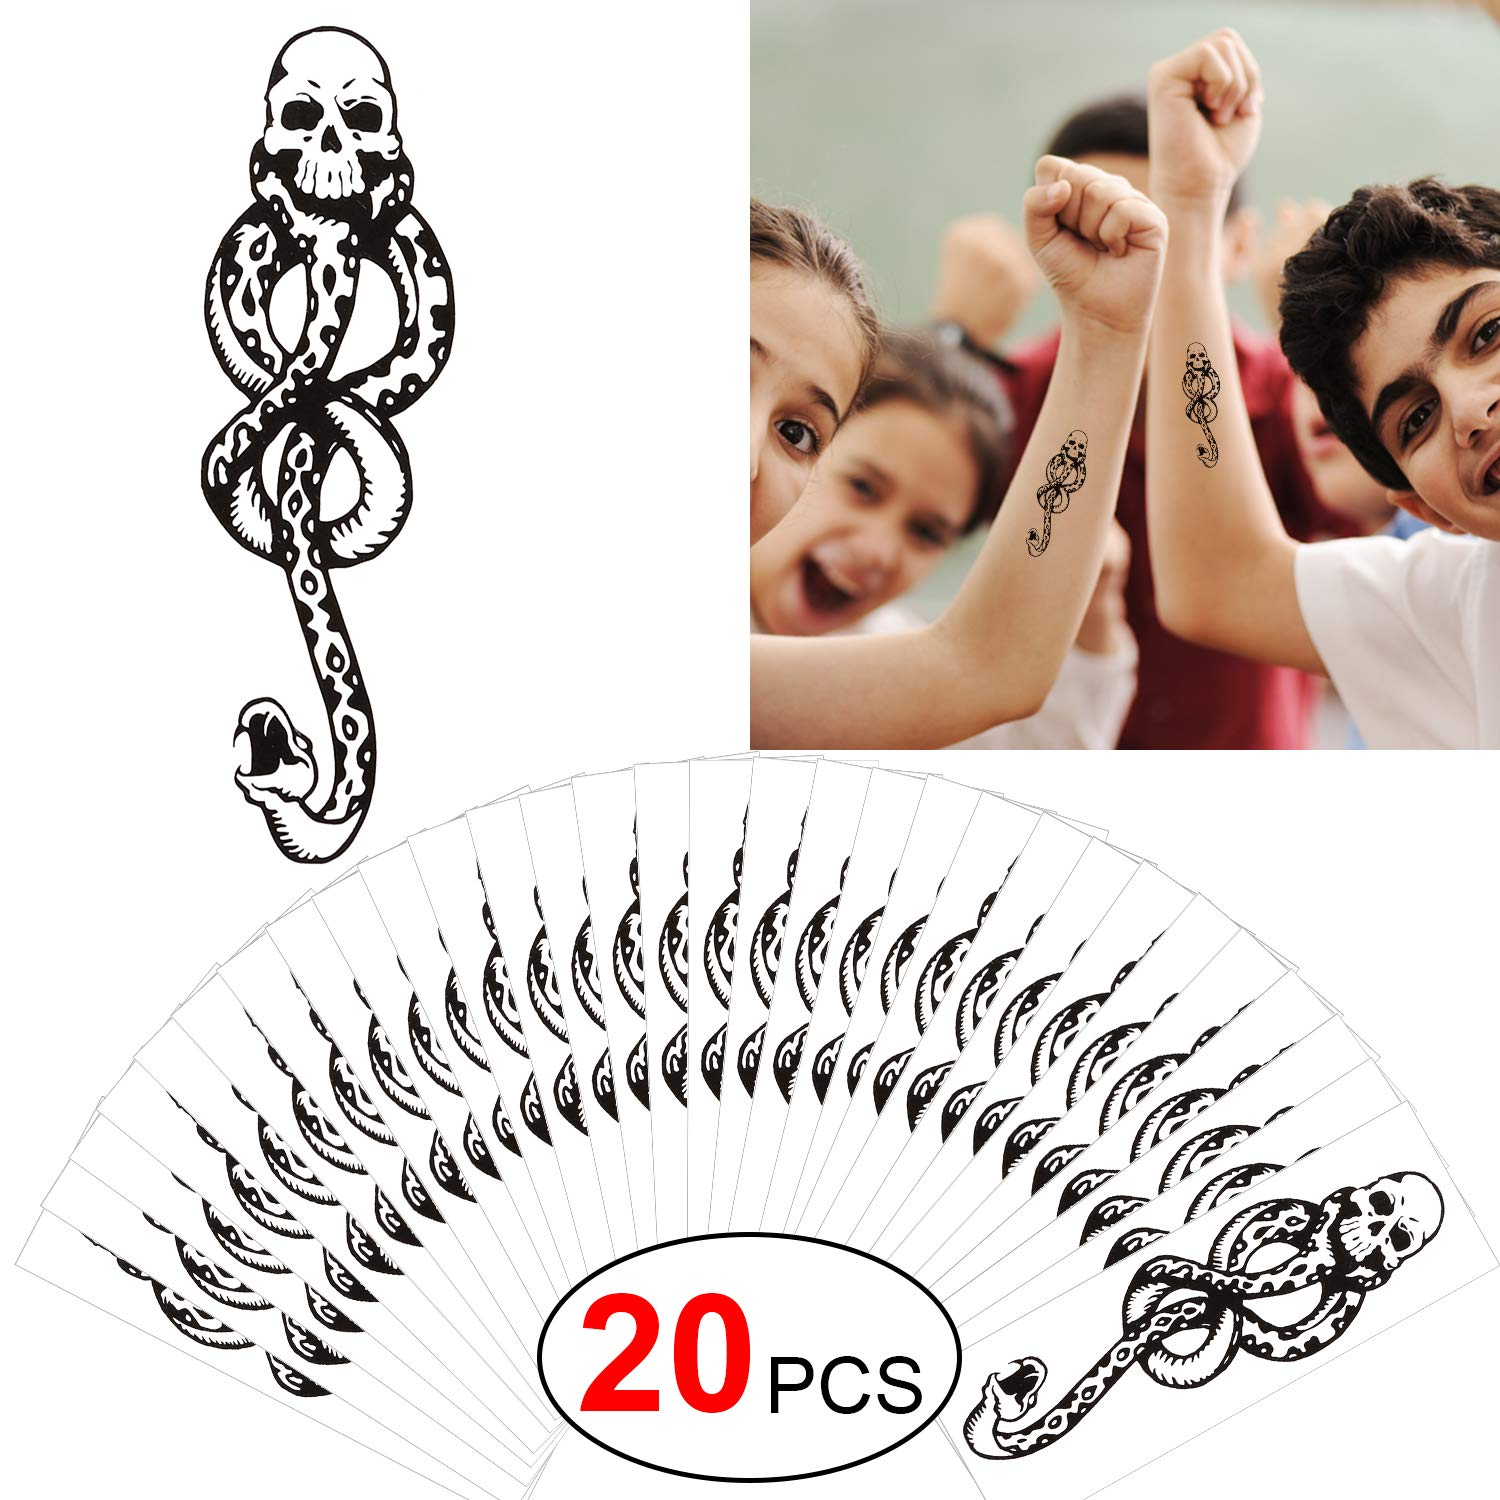 Howaf 20pcs Death Eaters Dark Mark Mamba Skull Temporary Tattoo for Halloween Costume Accessories, Halloween Tattoos for Kids, Women, Men